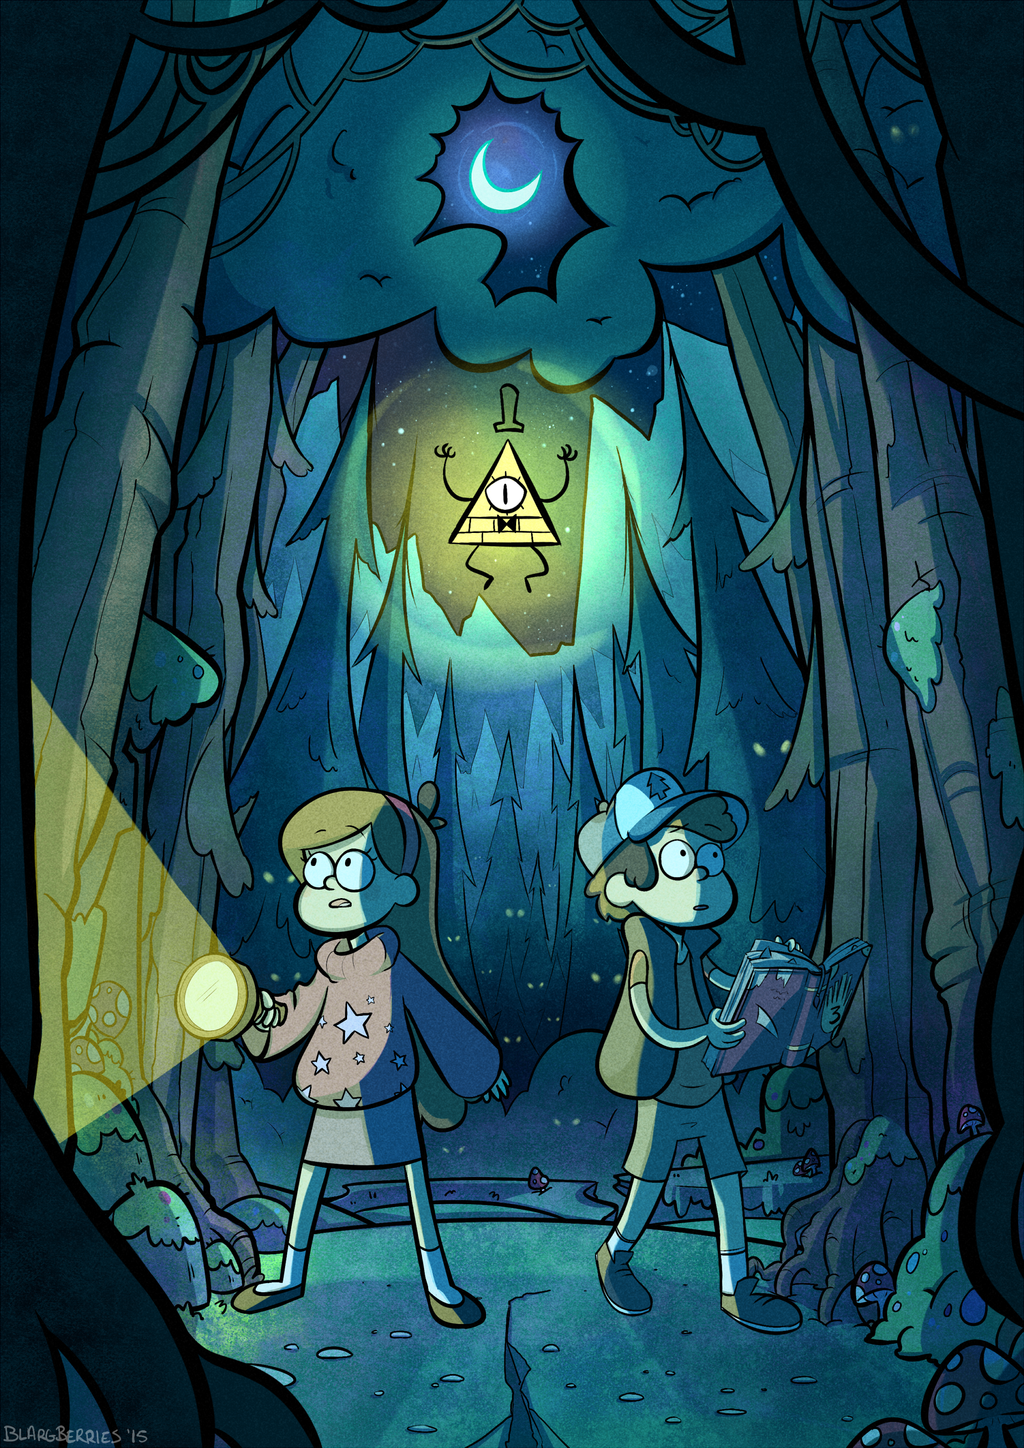 gravity falls wallpaper tumblr backgrounds - photo #35